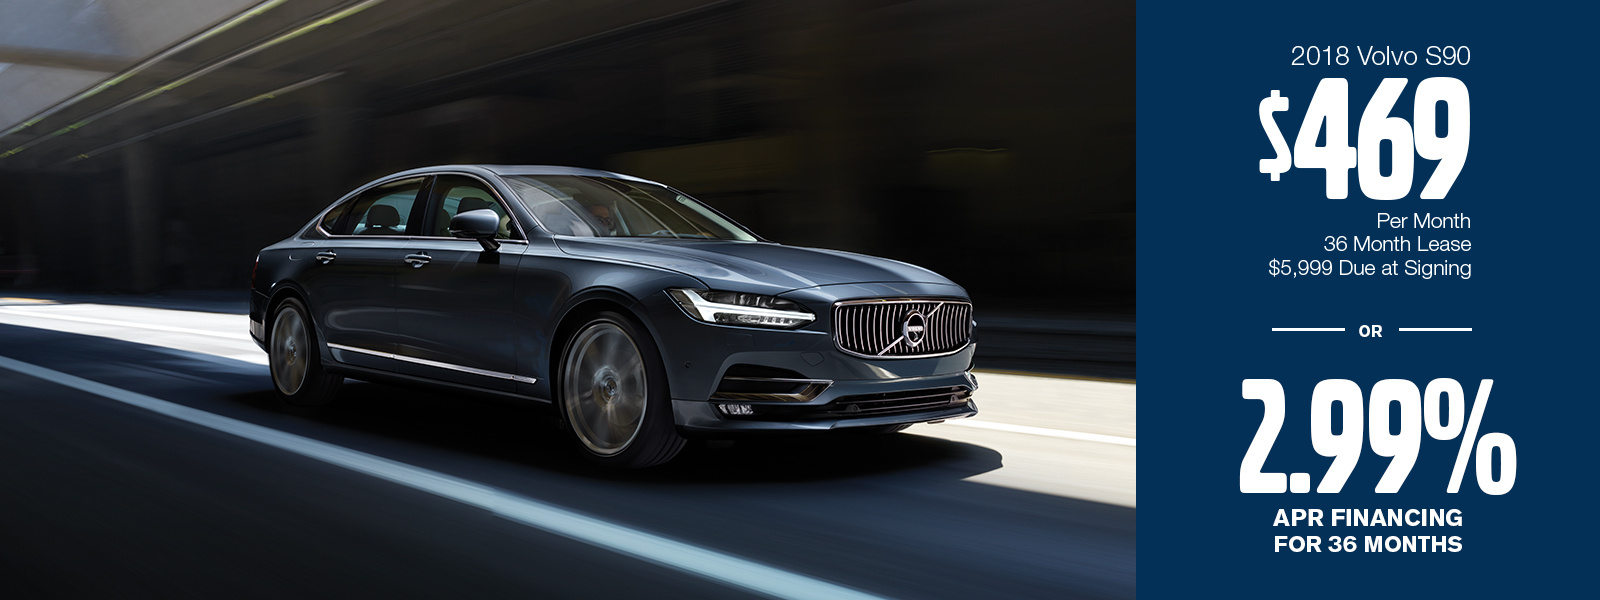 2018 Volvo S90 Lease or Low APR Finance Special in Gilbert, AZ